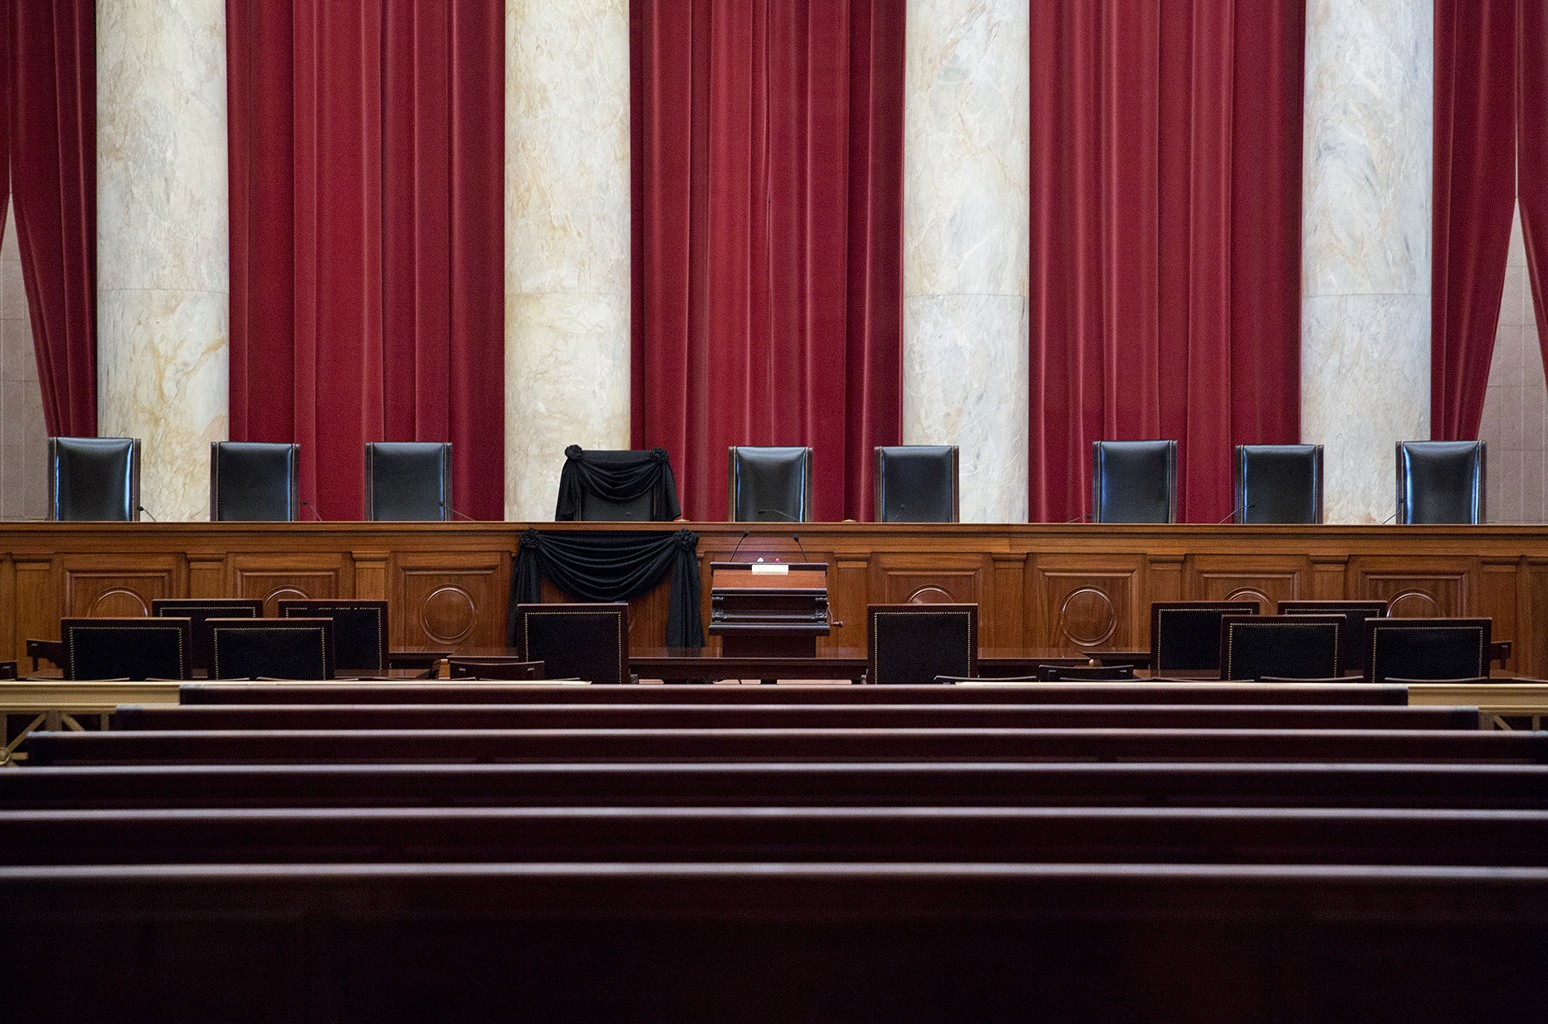 The Supreme Court courtroom